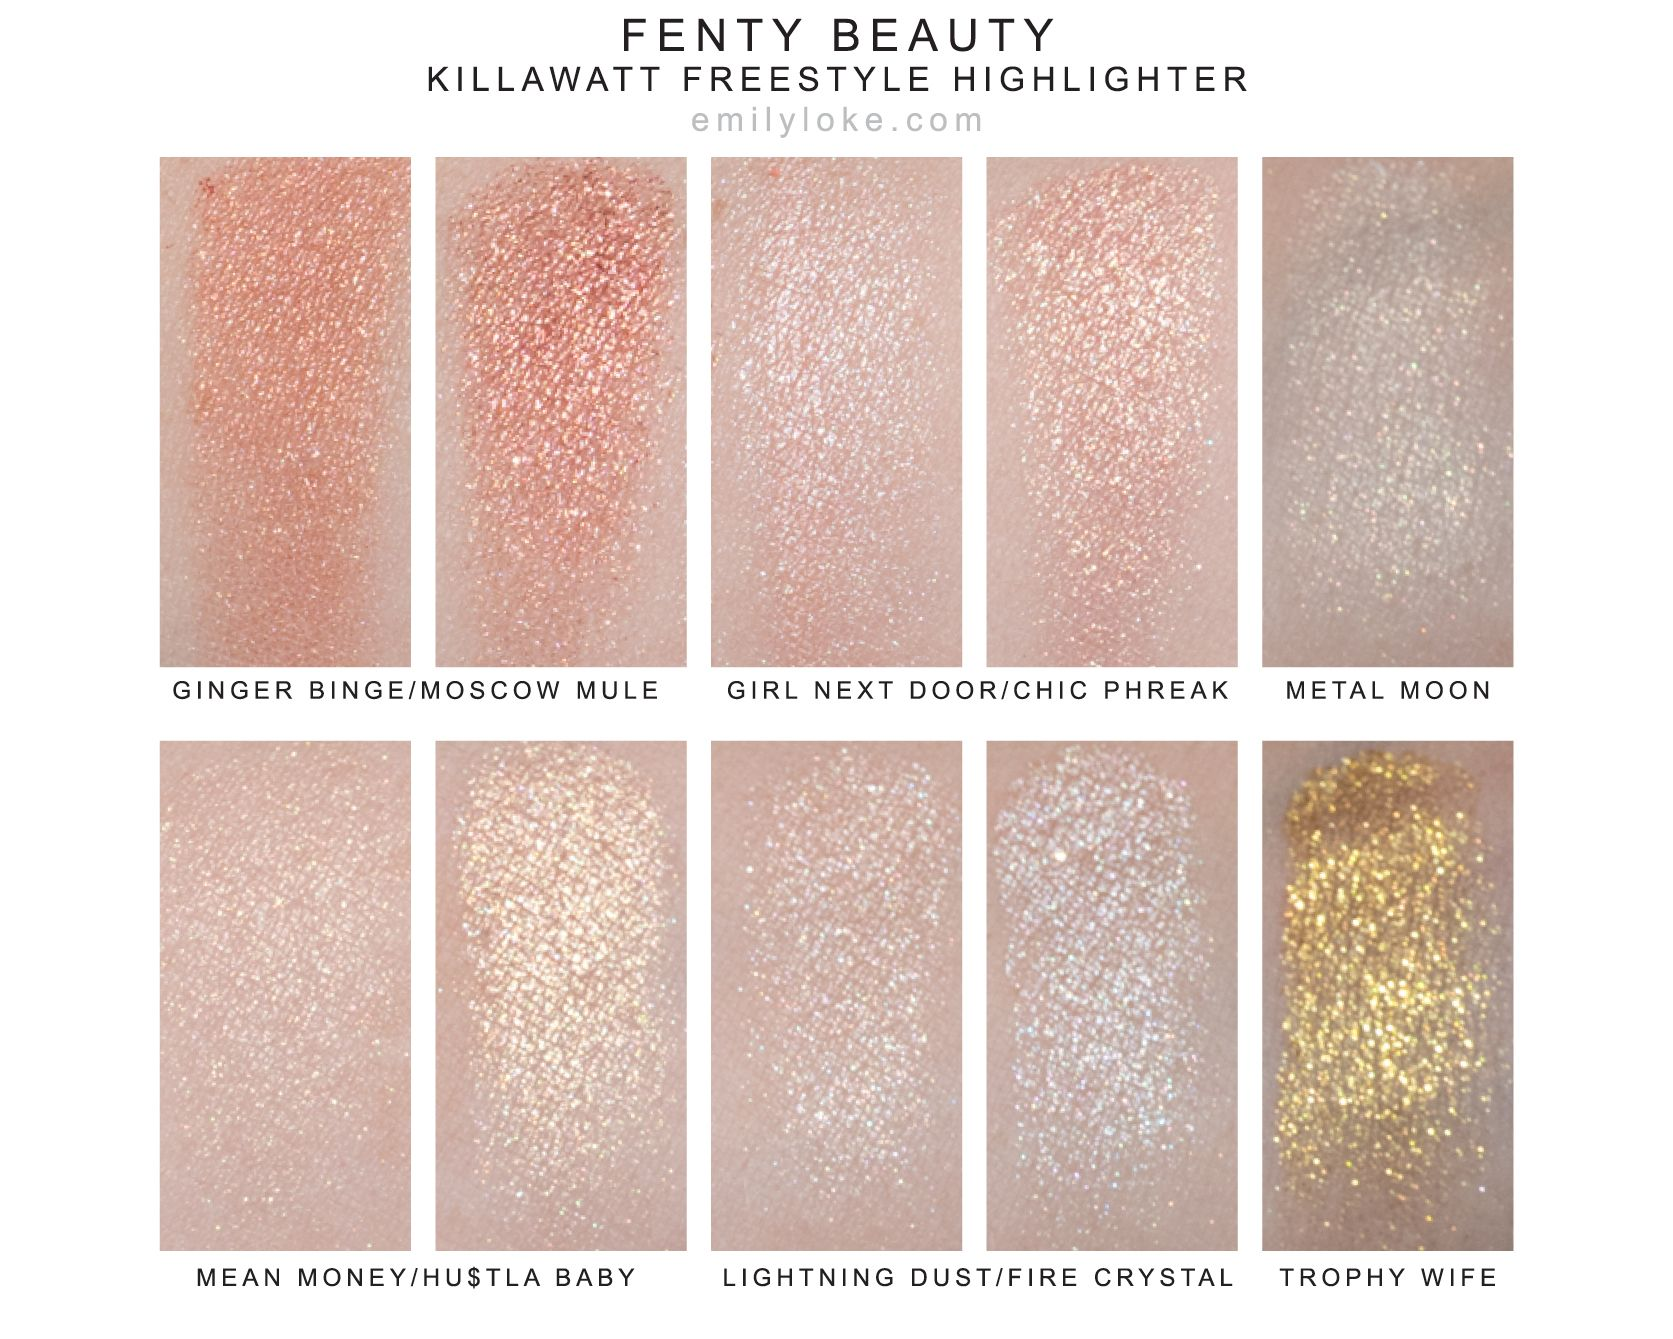 Fenty Beauty Killawatt Highlighter swatches | beauty blog ...